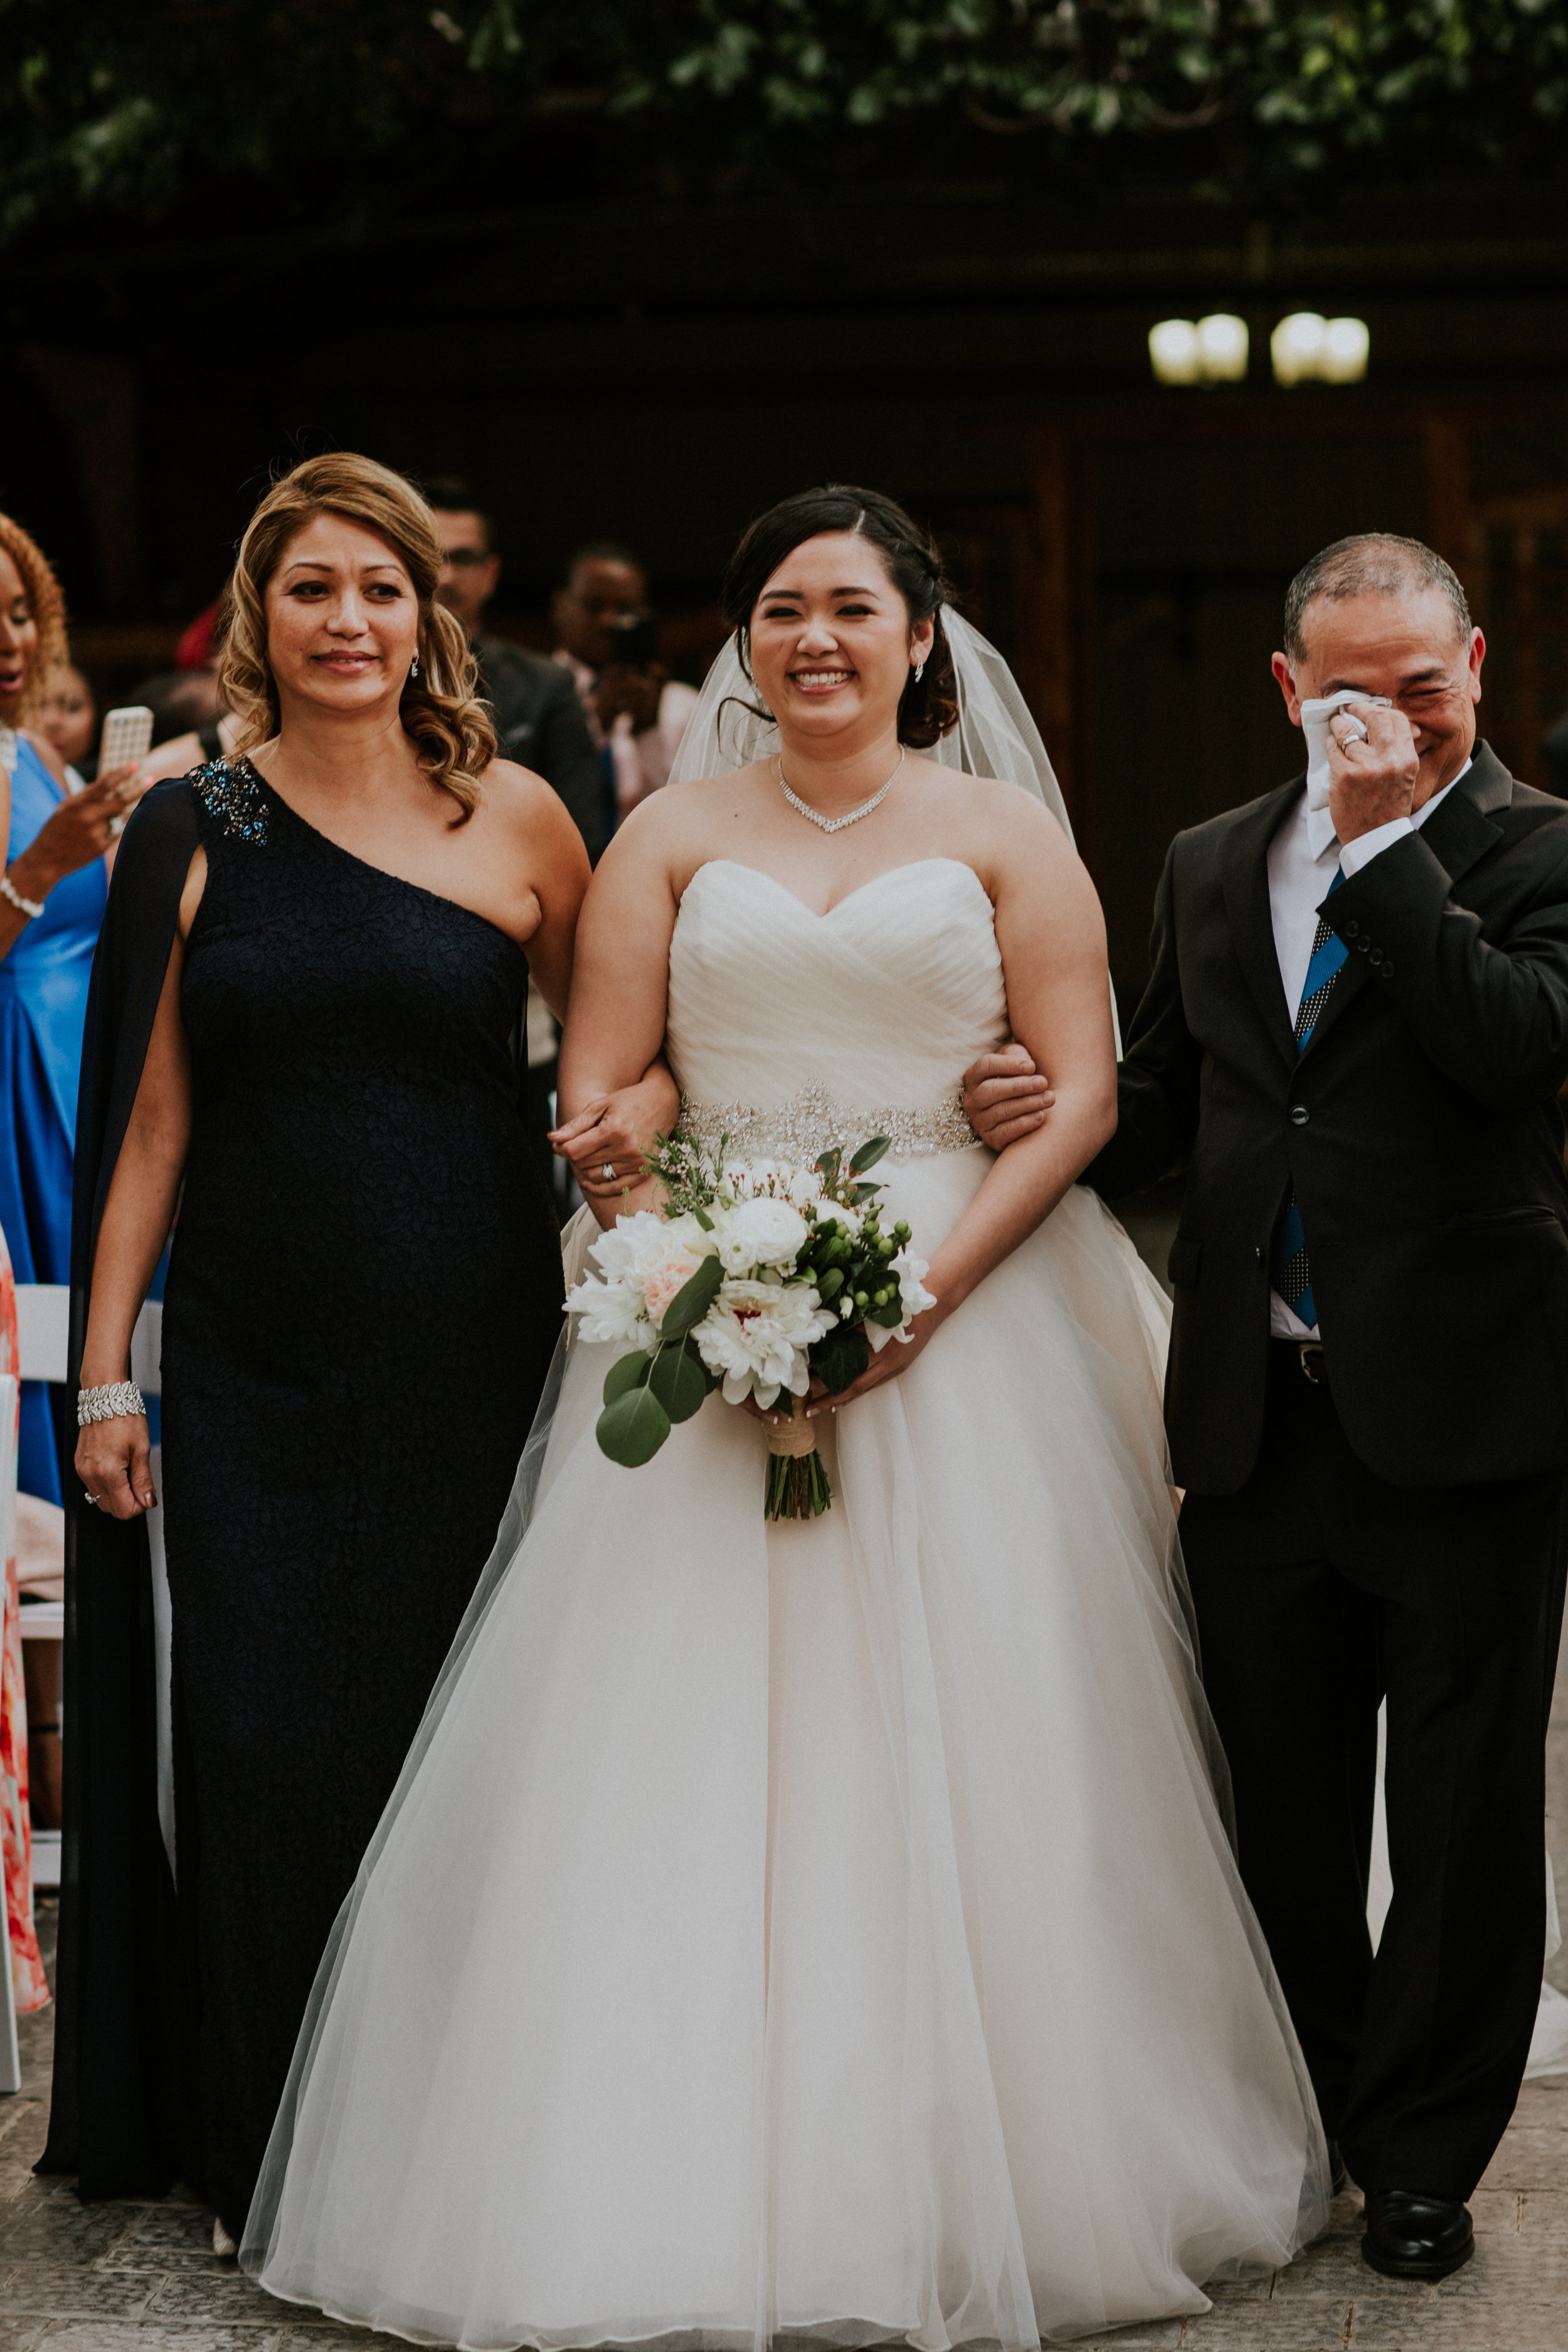 Bride walking down the isle on her wedding day